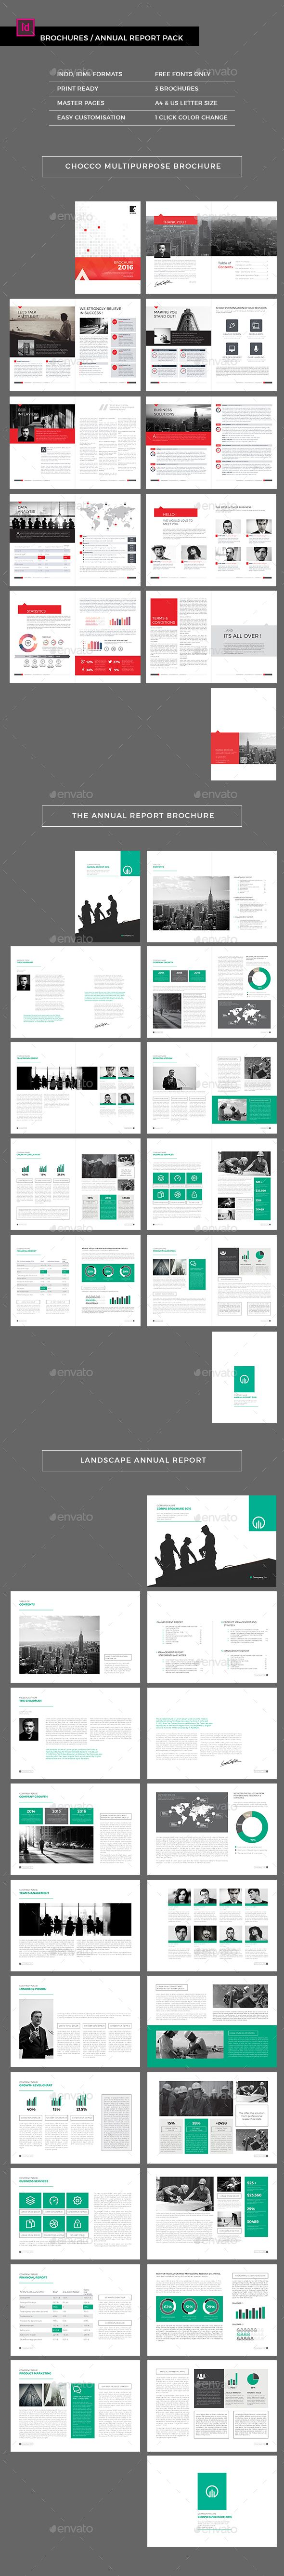 Corporate Brochures Pack Template 	InDesign INDD. Download here: http://graphicriver.net/item/corporate-brochures-pack/15831203?ref=ksioks